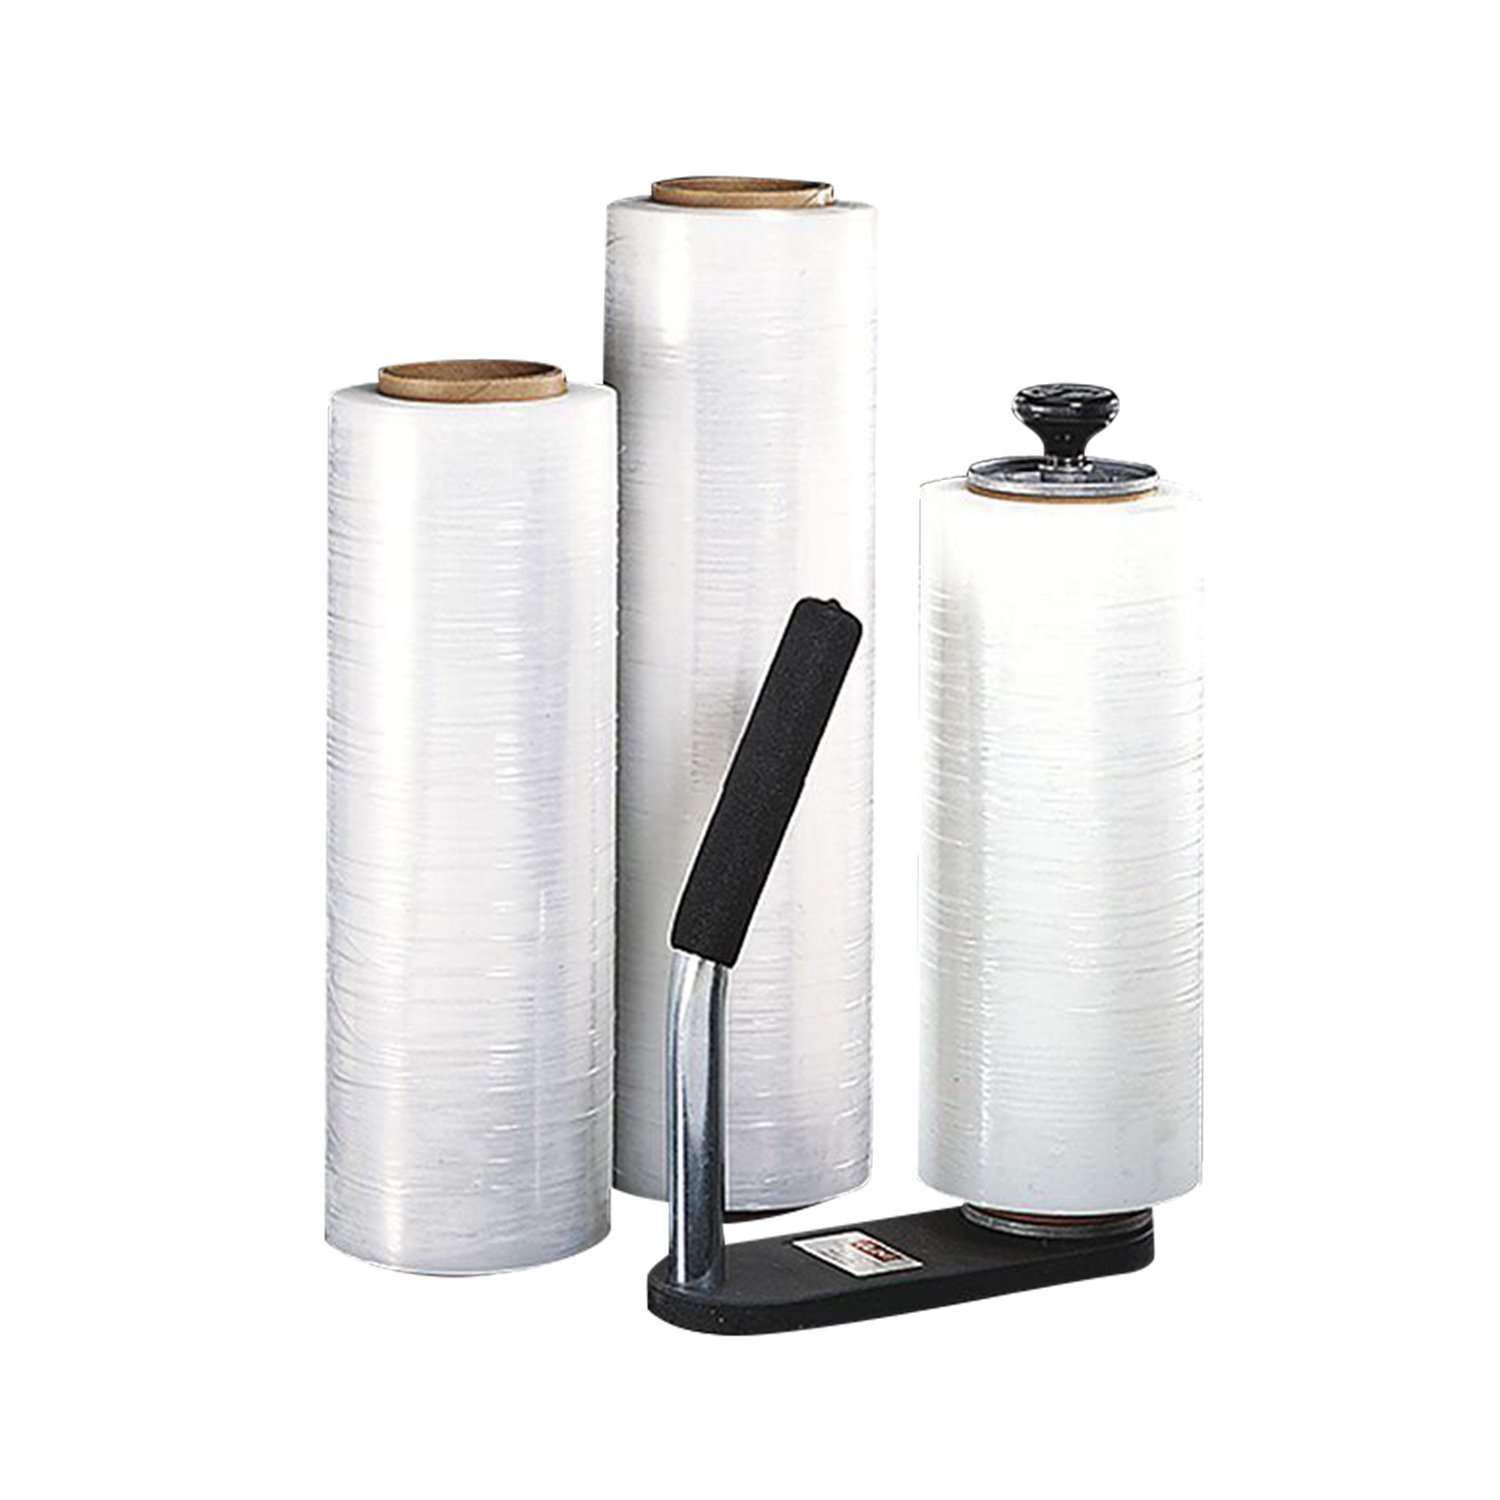 Clear Plastic Stretch Film, Industrial Strength Moving & Packing Wrap, 2 Pack 18'' x 1500 Ft Rolls with Best Selling Stretch Film Dispenser with Tension Knob Adjustment for Furniture, Boxes & Pallets